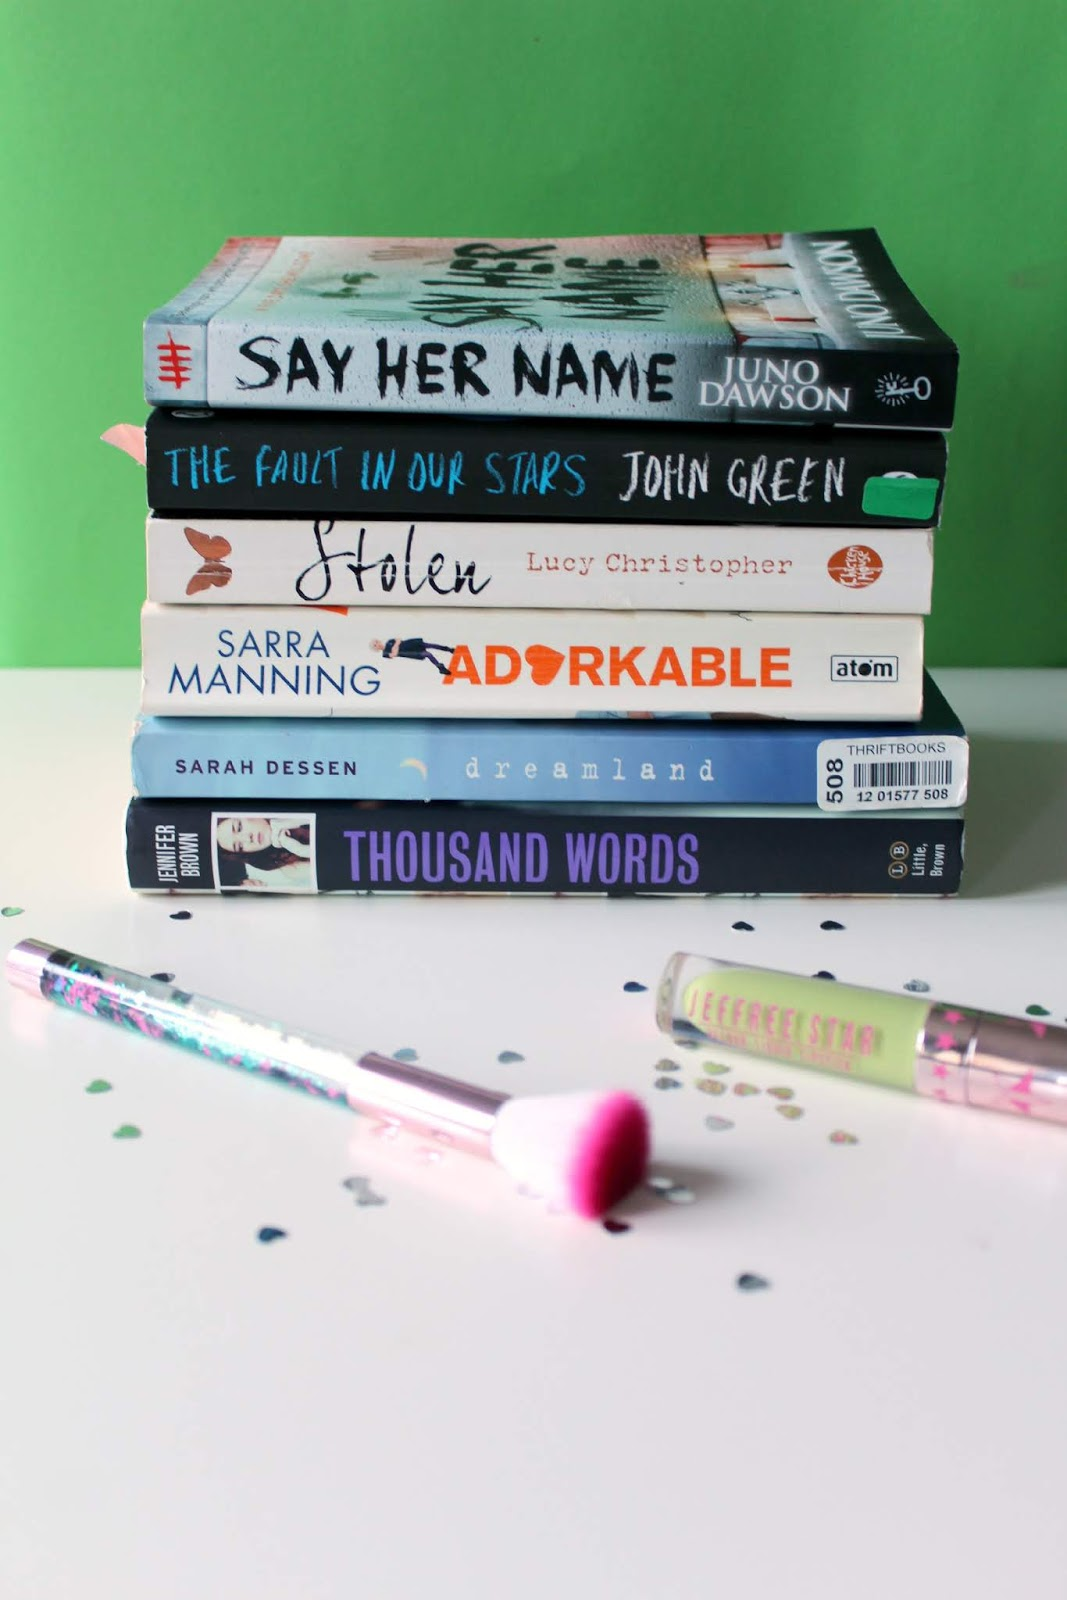 young adult books to read, ya must reads, books to read, say her name, juno dawson, review, the fault in our stars, john green, stolen, lucy christopher, sarra manning, adorkable, dreamland, sarah dessen, thousand words, jennifer brown